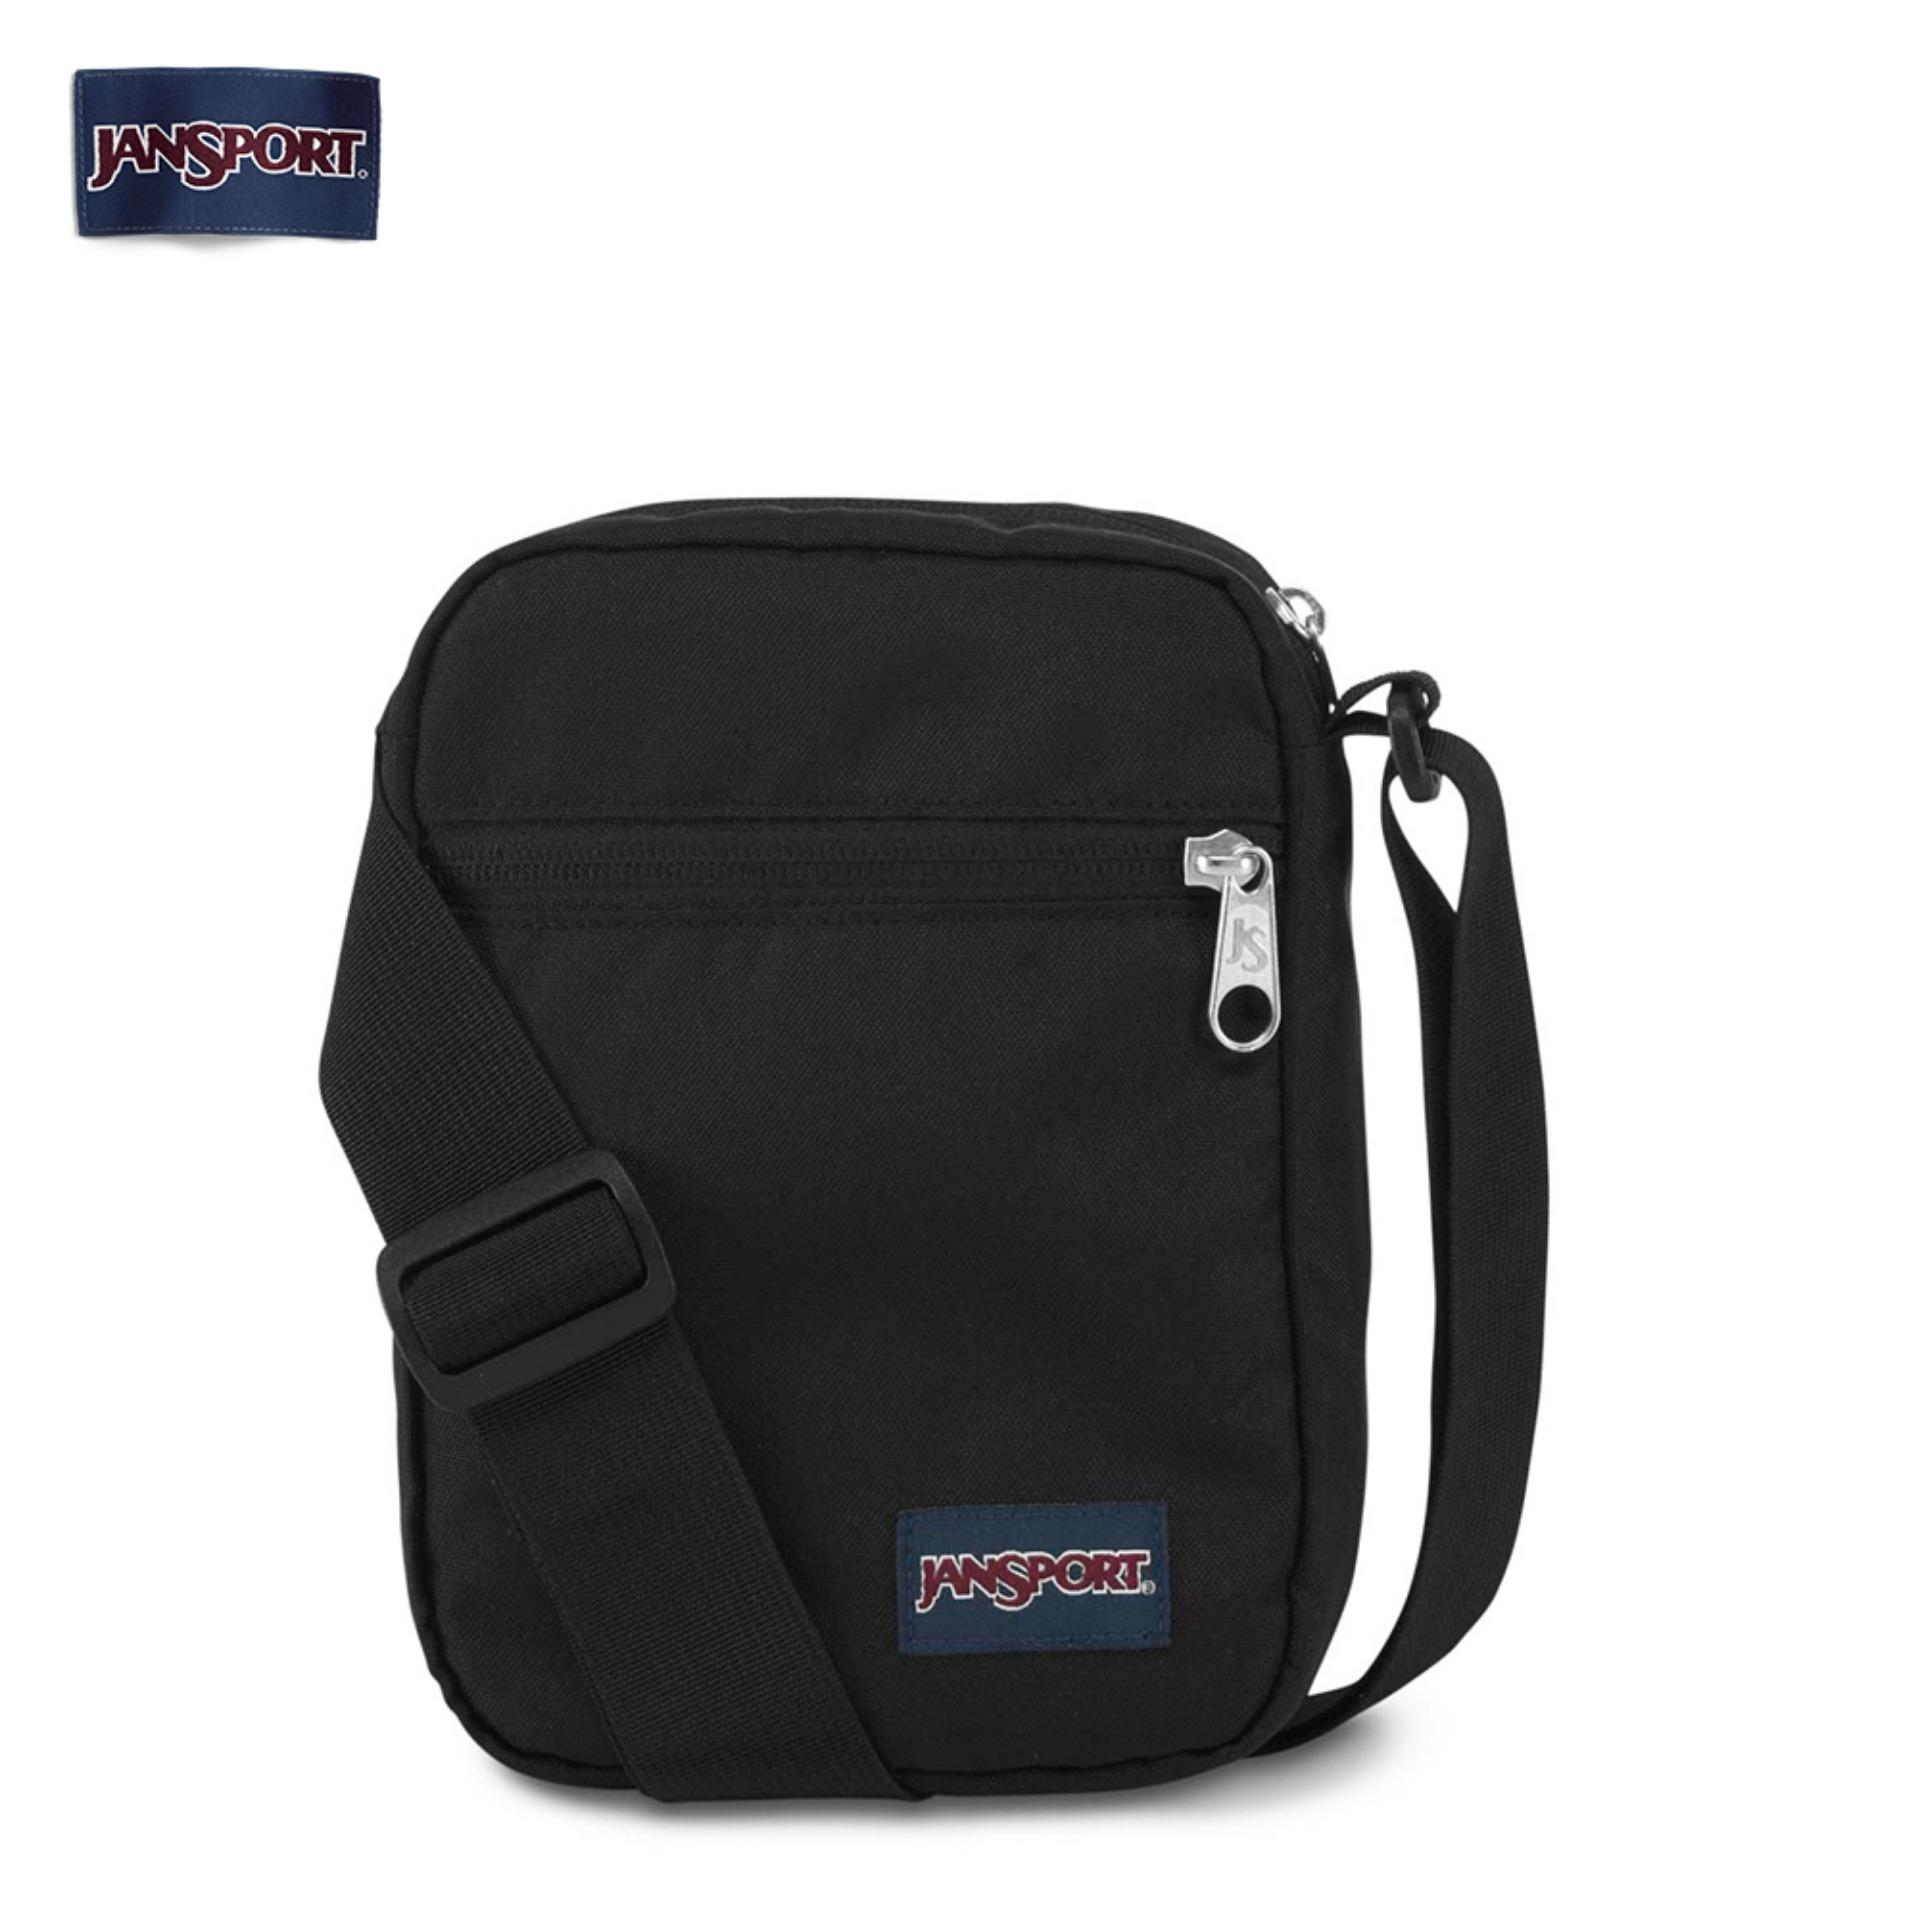 JanSport Unisex Weekender Bag 600 Denier Polyester Small Bag Accessory Bag 4ddf56ab41723